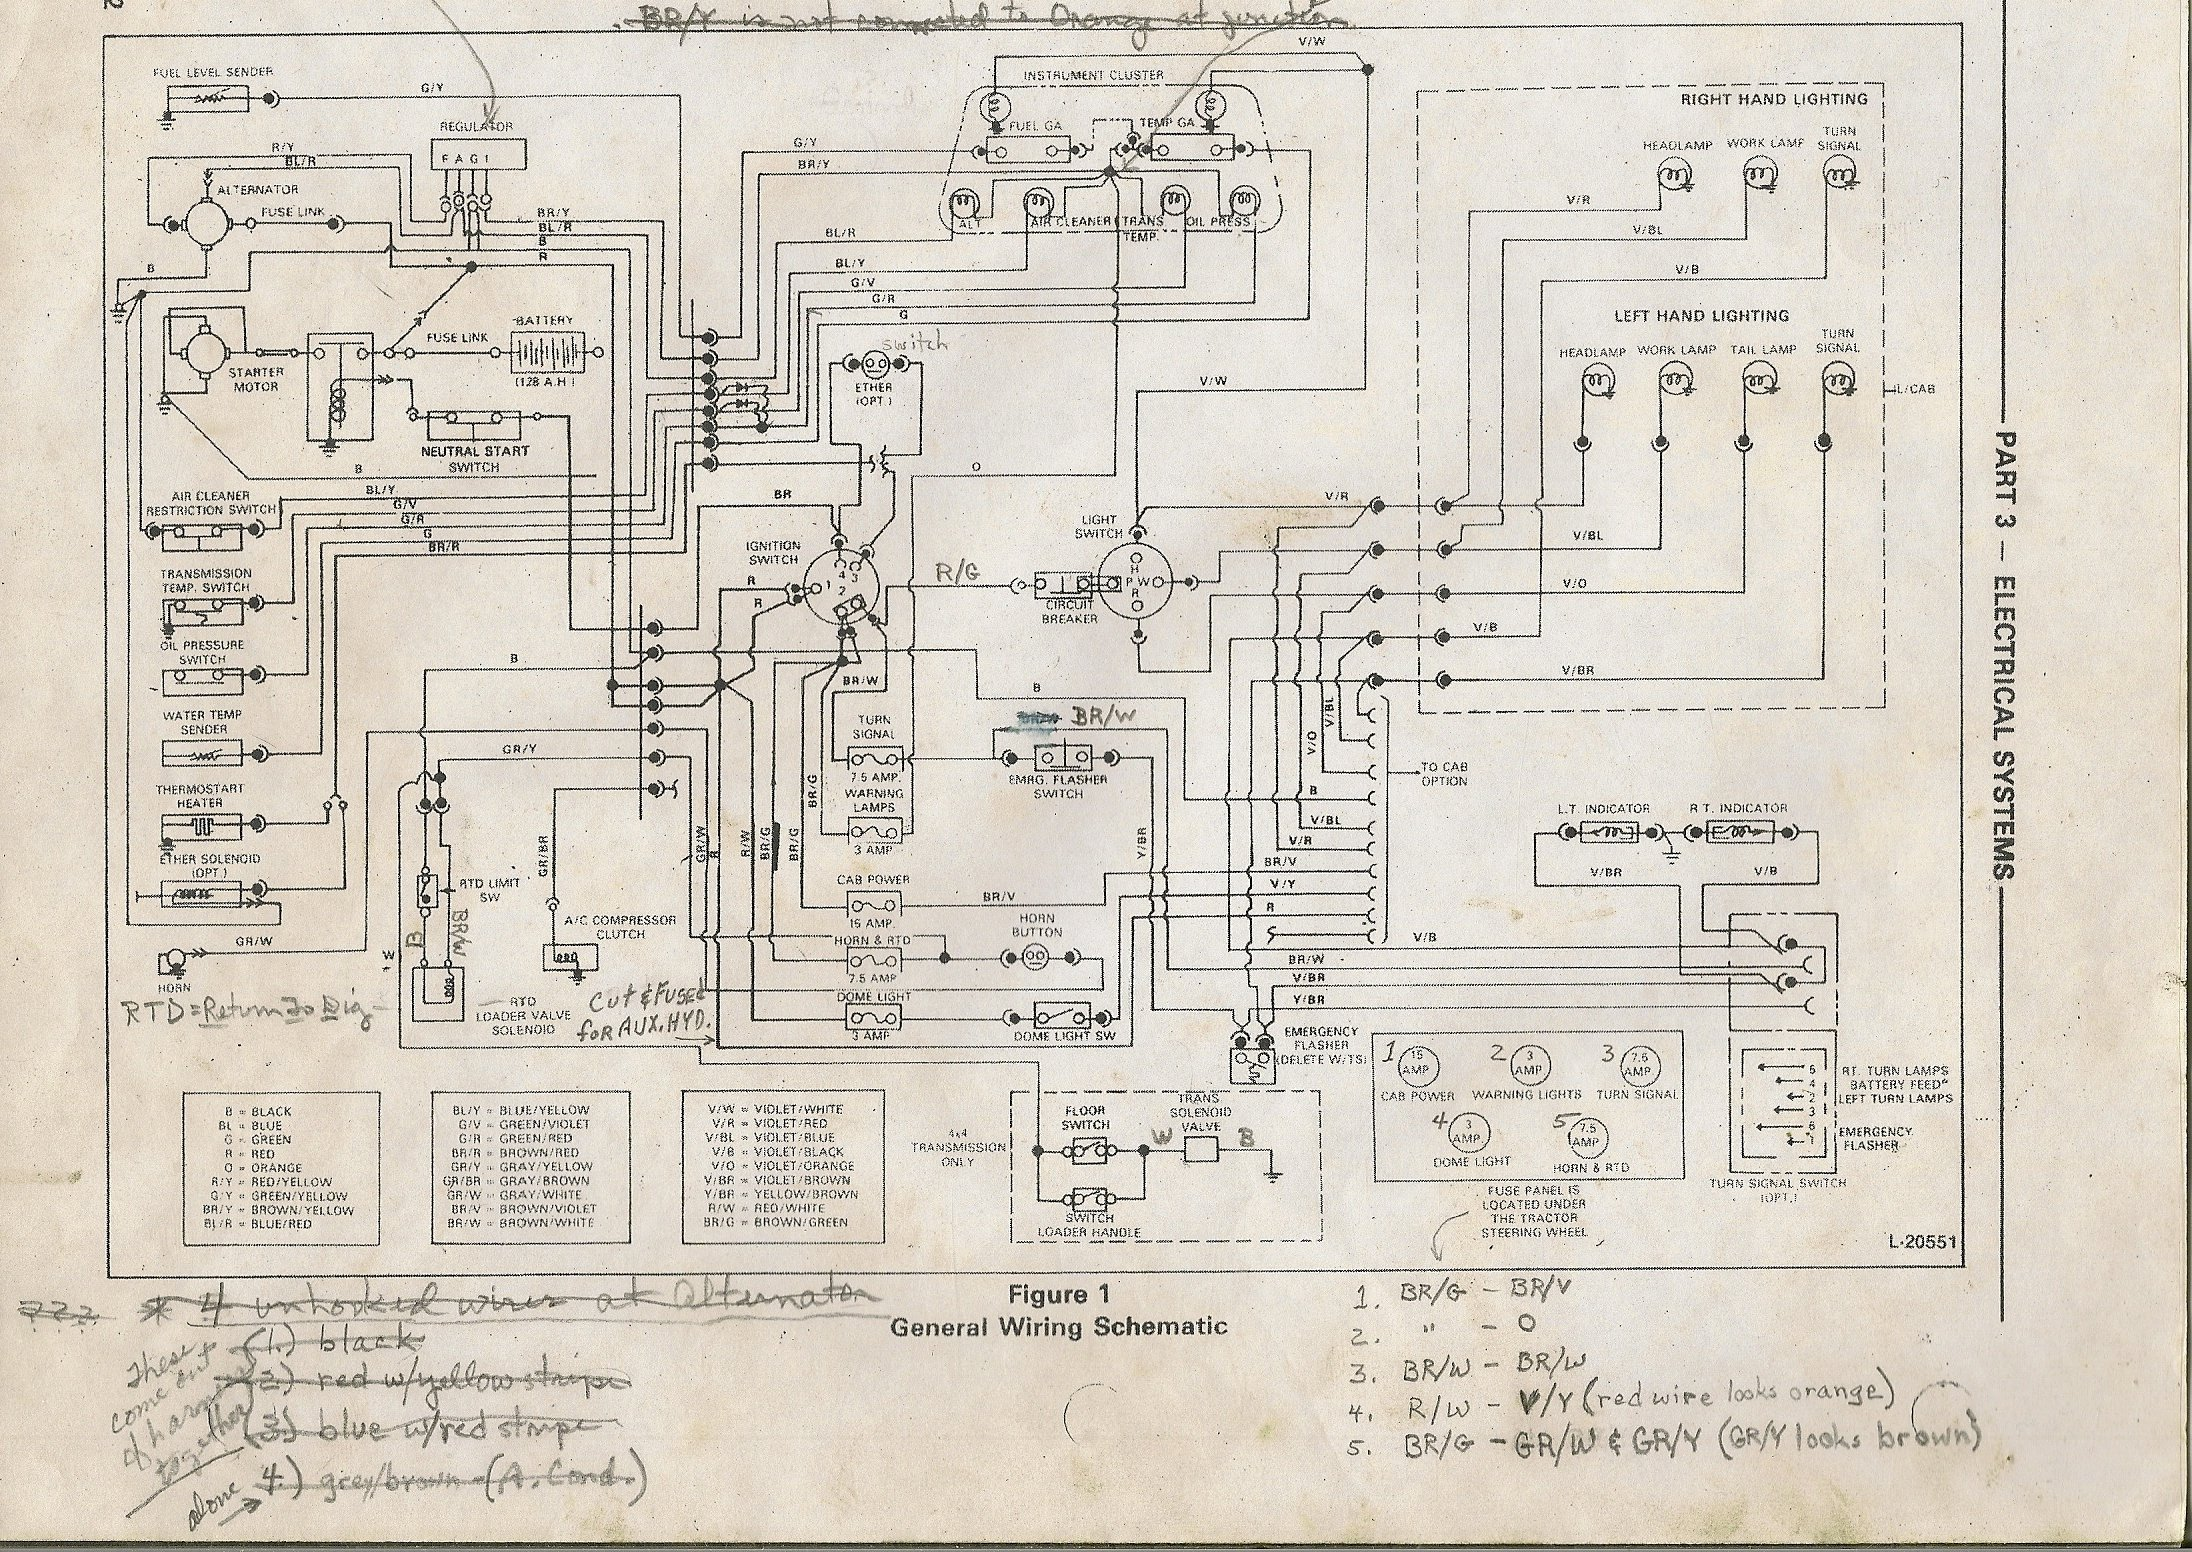 Ford Regulator Wiring Diagram on john deere ignition wiring diagram, ford 5000 tractor wiring harness, ford 4000 tractor electrical diagram, international tractor wiring diagram, ford 5000 tractor parts diagram, ford 4610 lights, ford tractor ignition diagram, ford 3600 tractor parts diagram, ford 800 tractor parts diagrams, ford 4610 solenoid, ford tractor 3930 wiring schematics, tractor ignition switch wiring diagram, ford 4610 thermostat, gehl 4610 wiring diagram, tractor starter wiring diagram, ford 3930 wiring-diagram, ford 4610 specifications, ford 4610 tractor, ford 4610 parts,